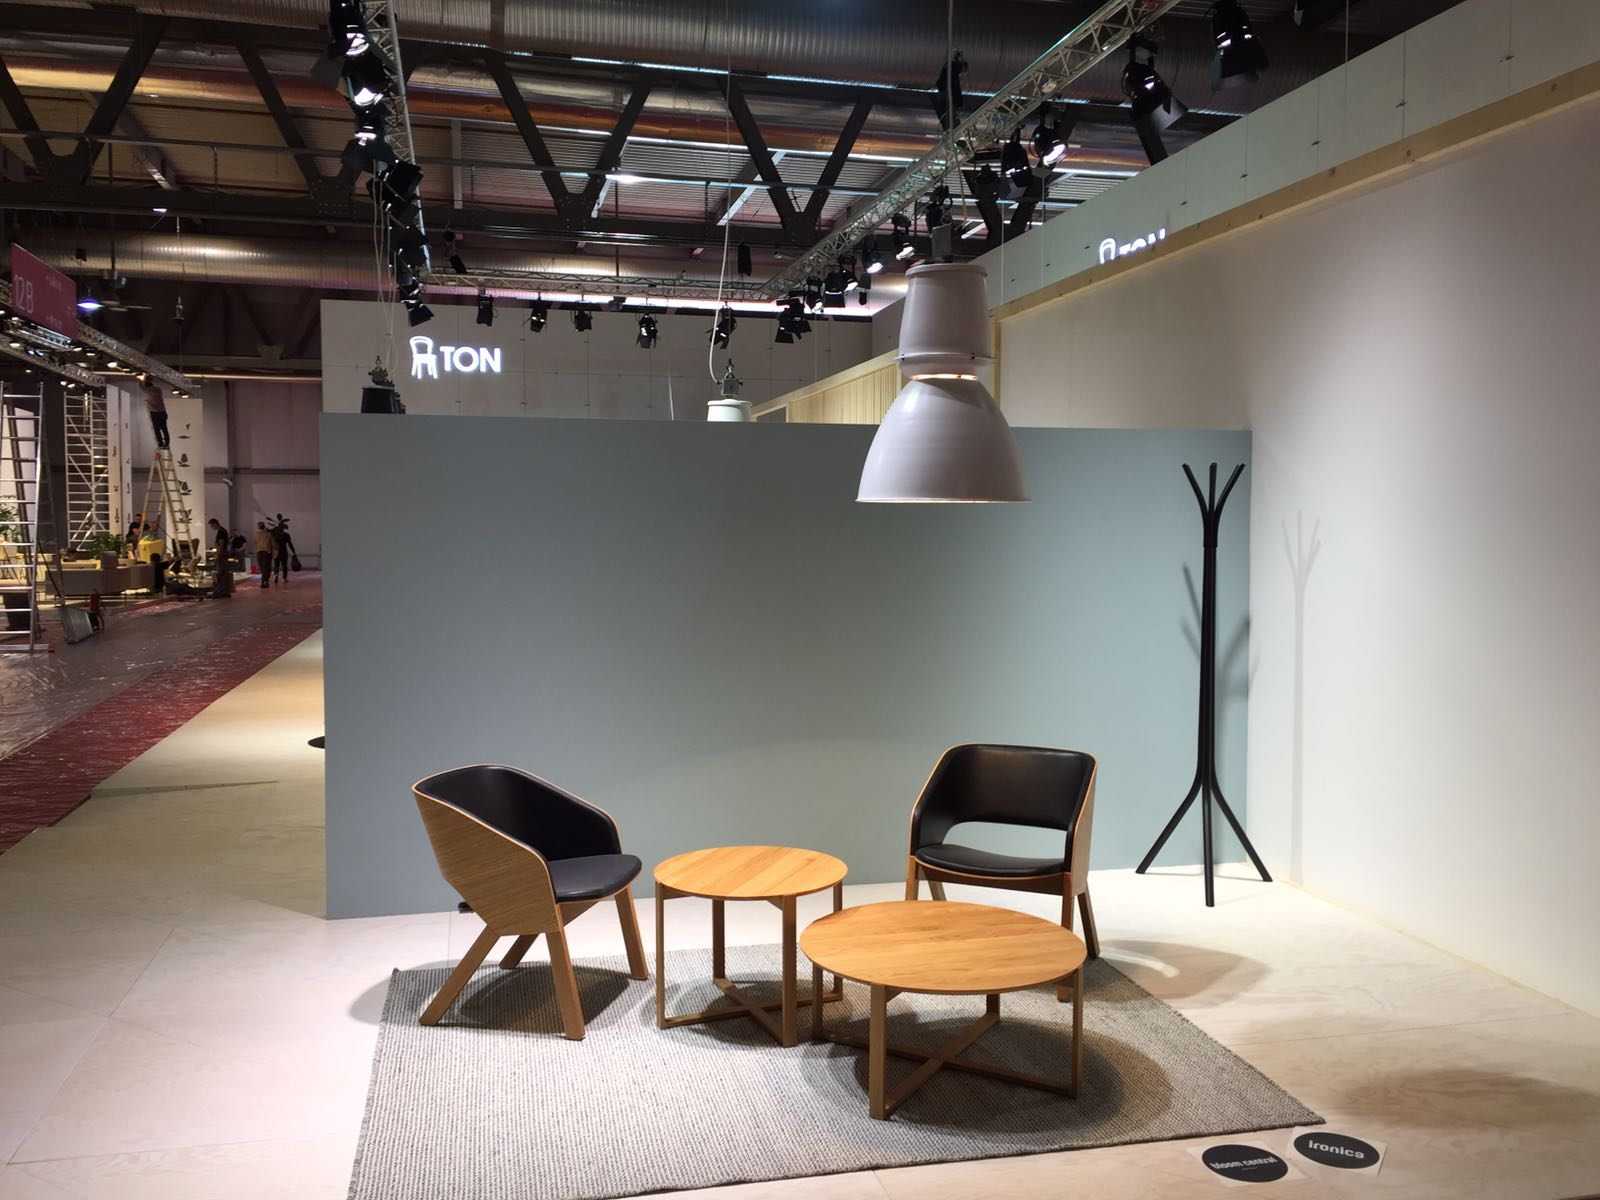 5 color trends spotted at salone del mobile 2017 - Salone del mobile 2017 date ...